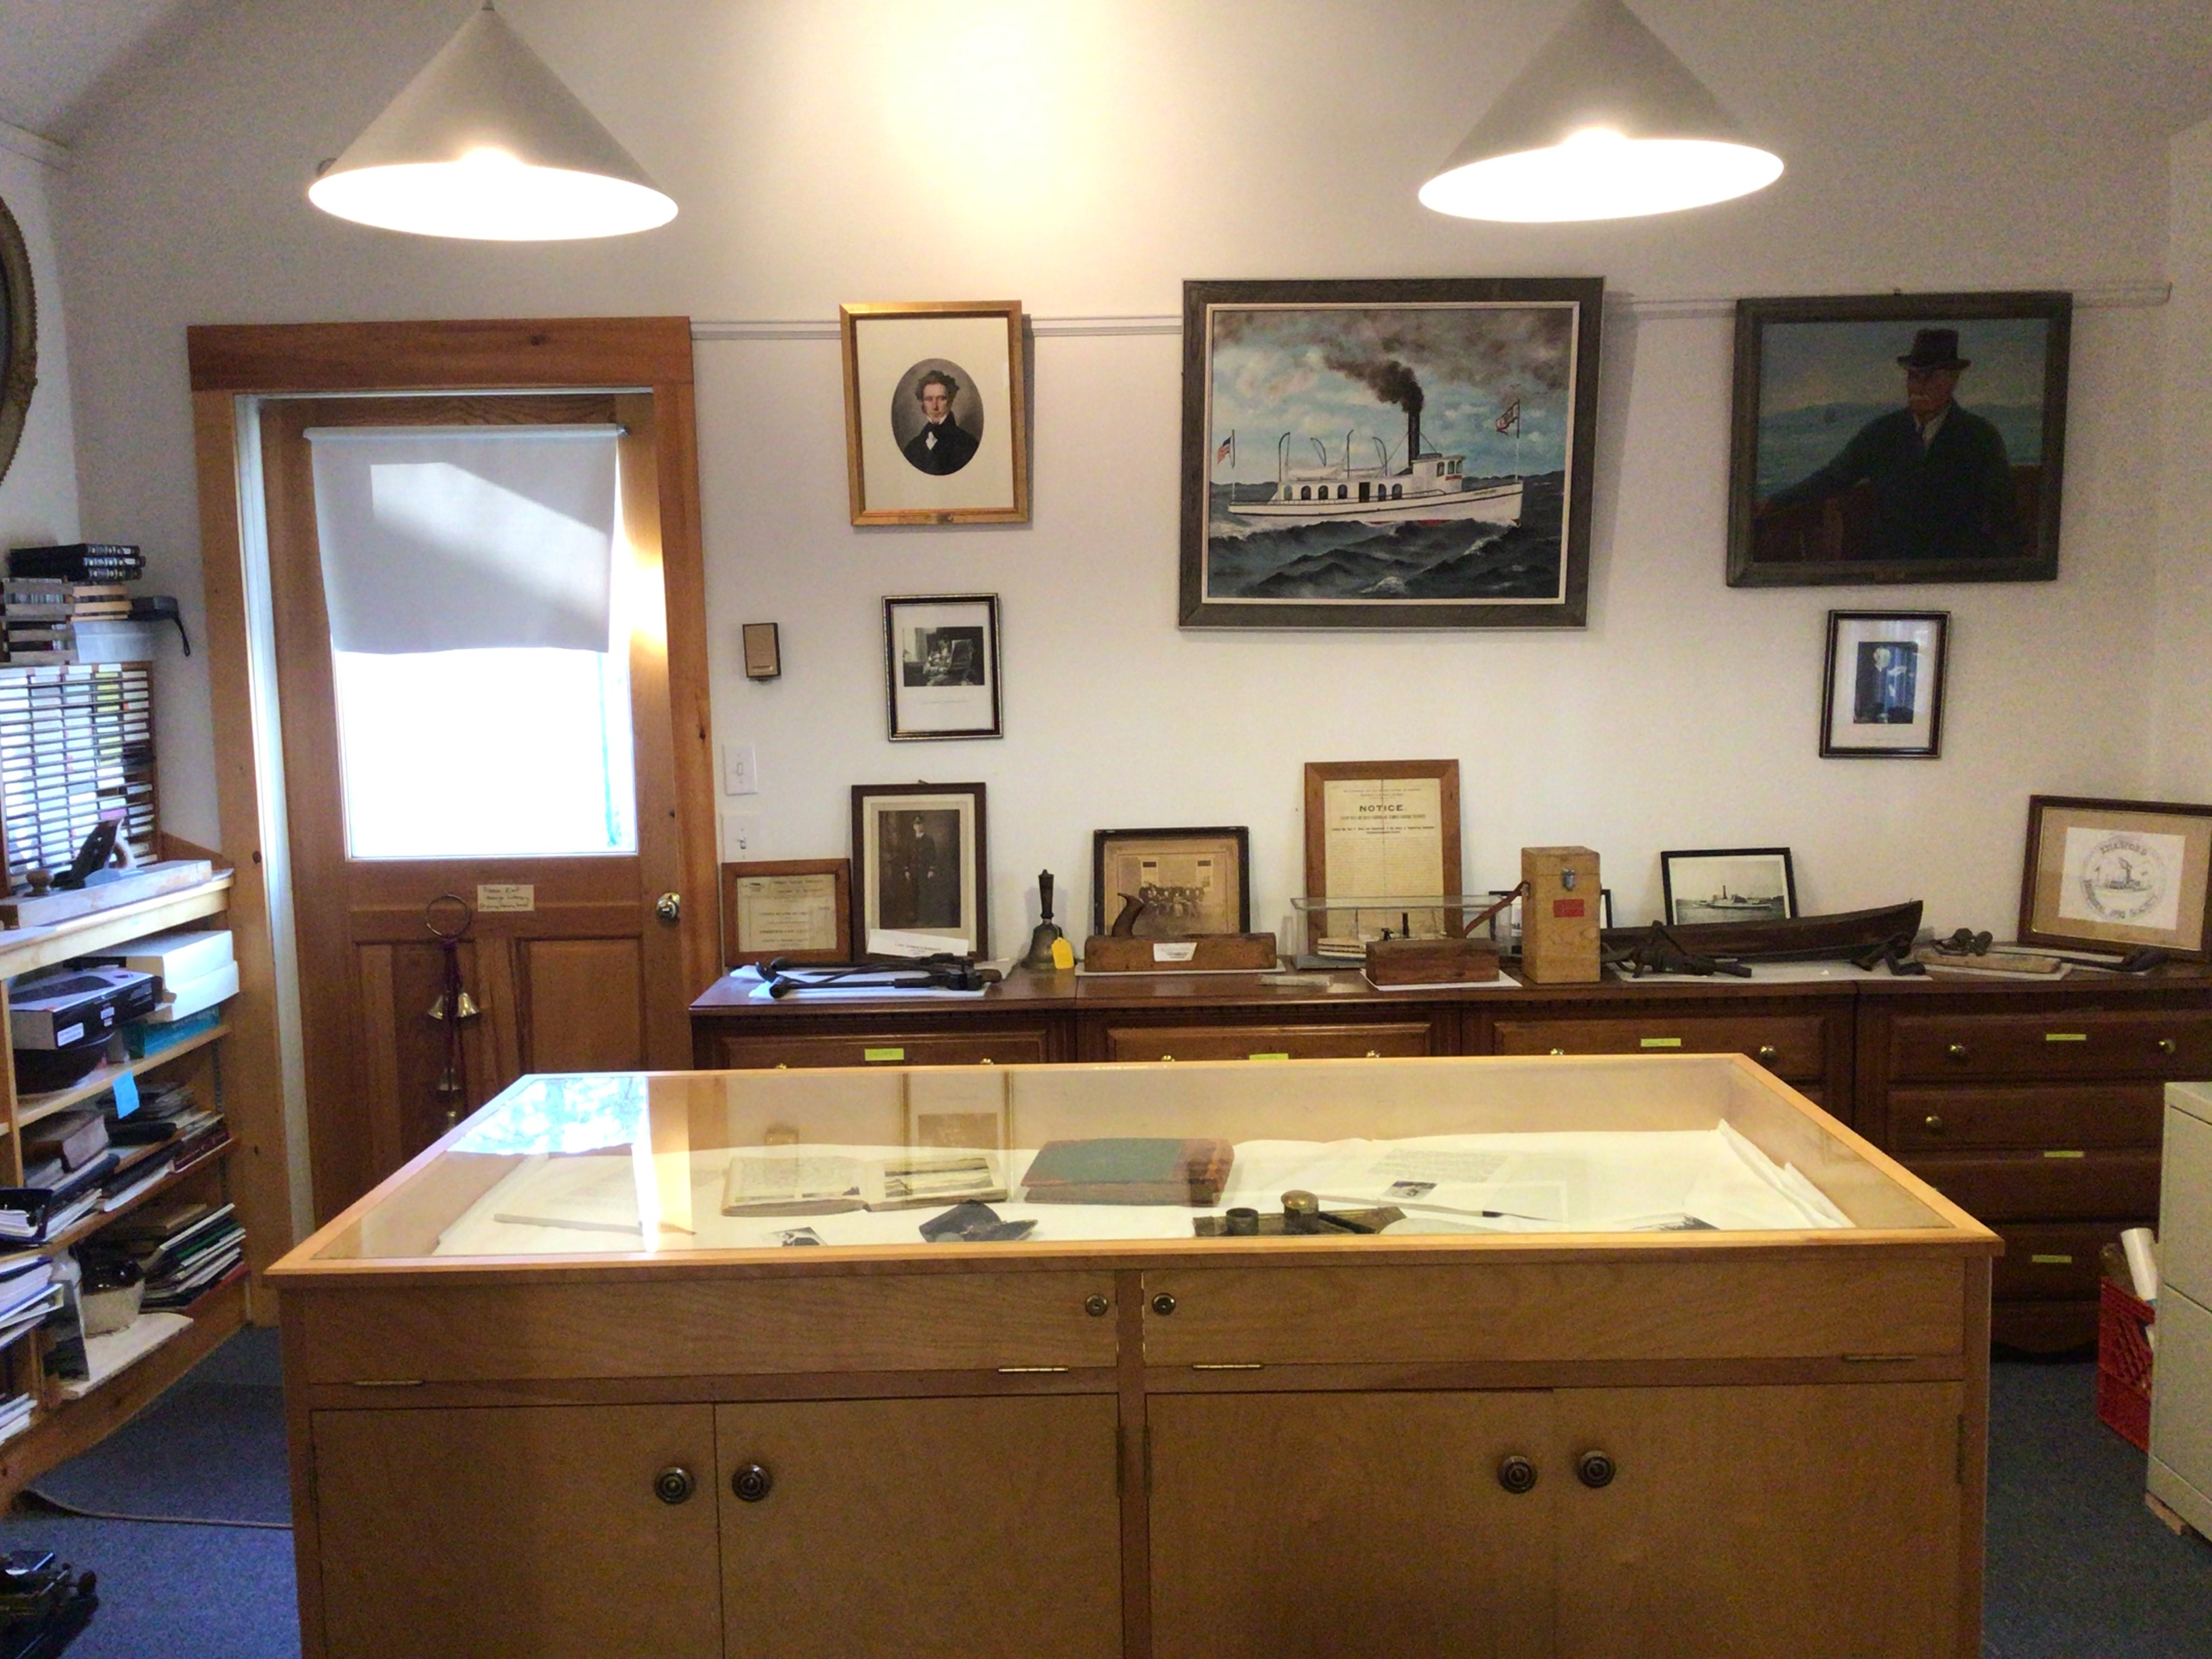 Interior of the Islesford Historical Society room taken from the Islesford Library backroom